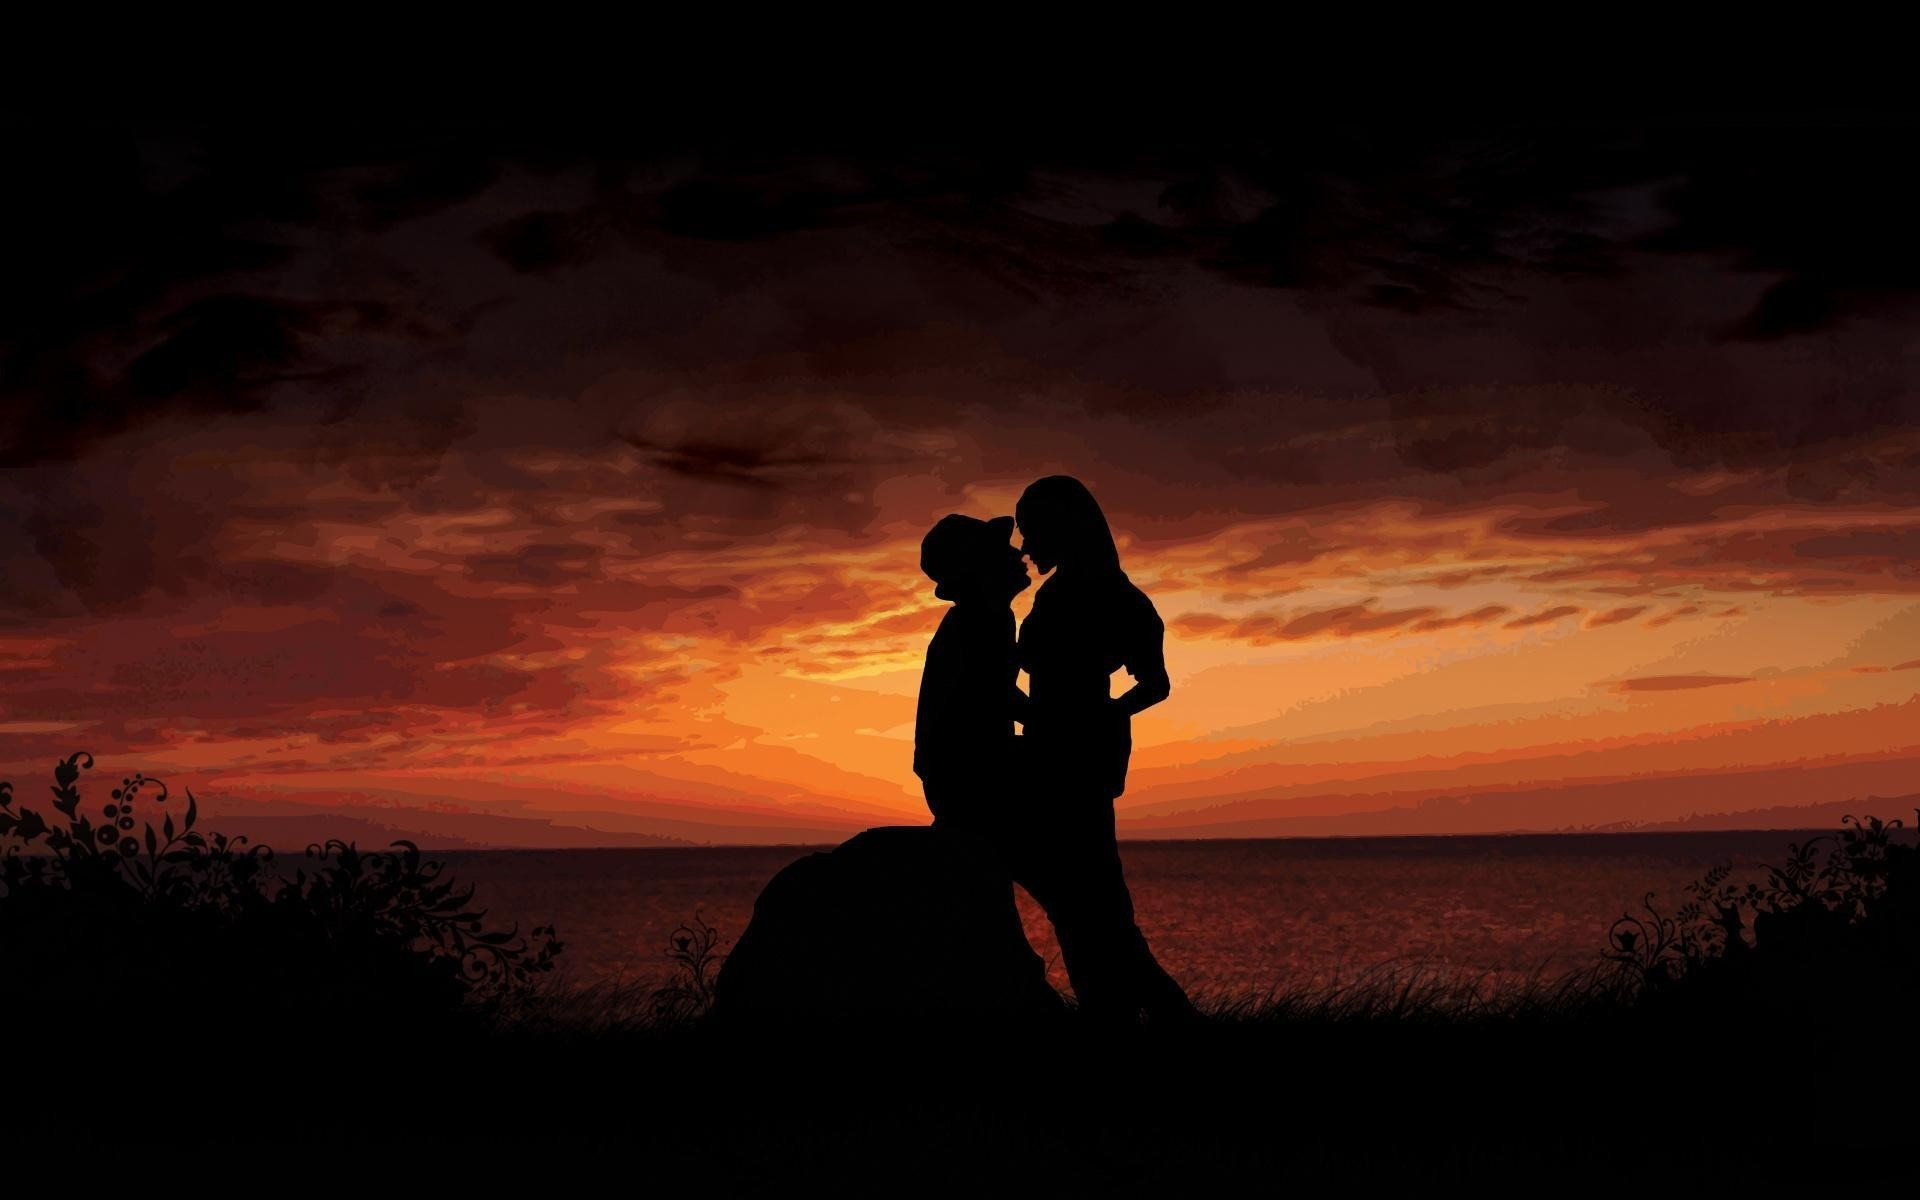 Love at sunset, a man and a woman, a passionate kiss.